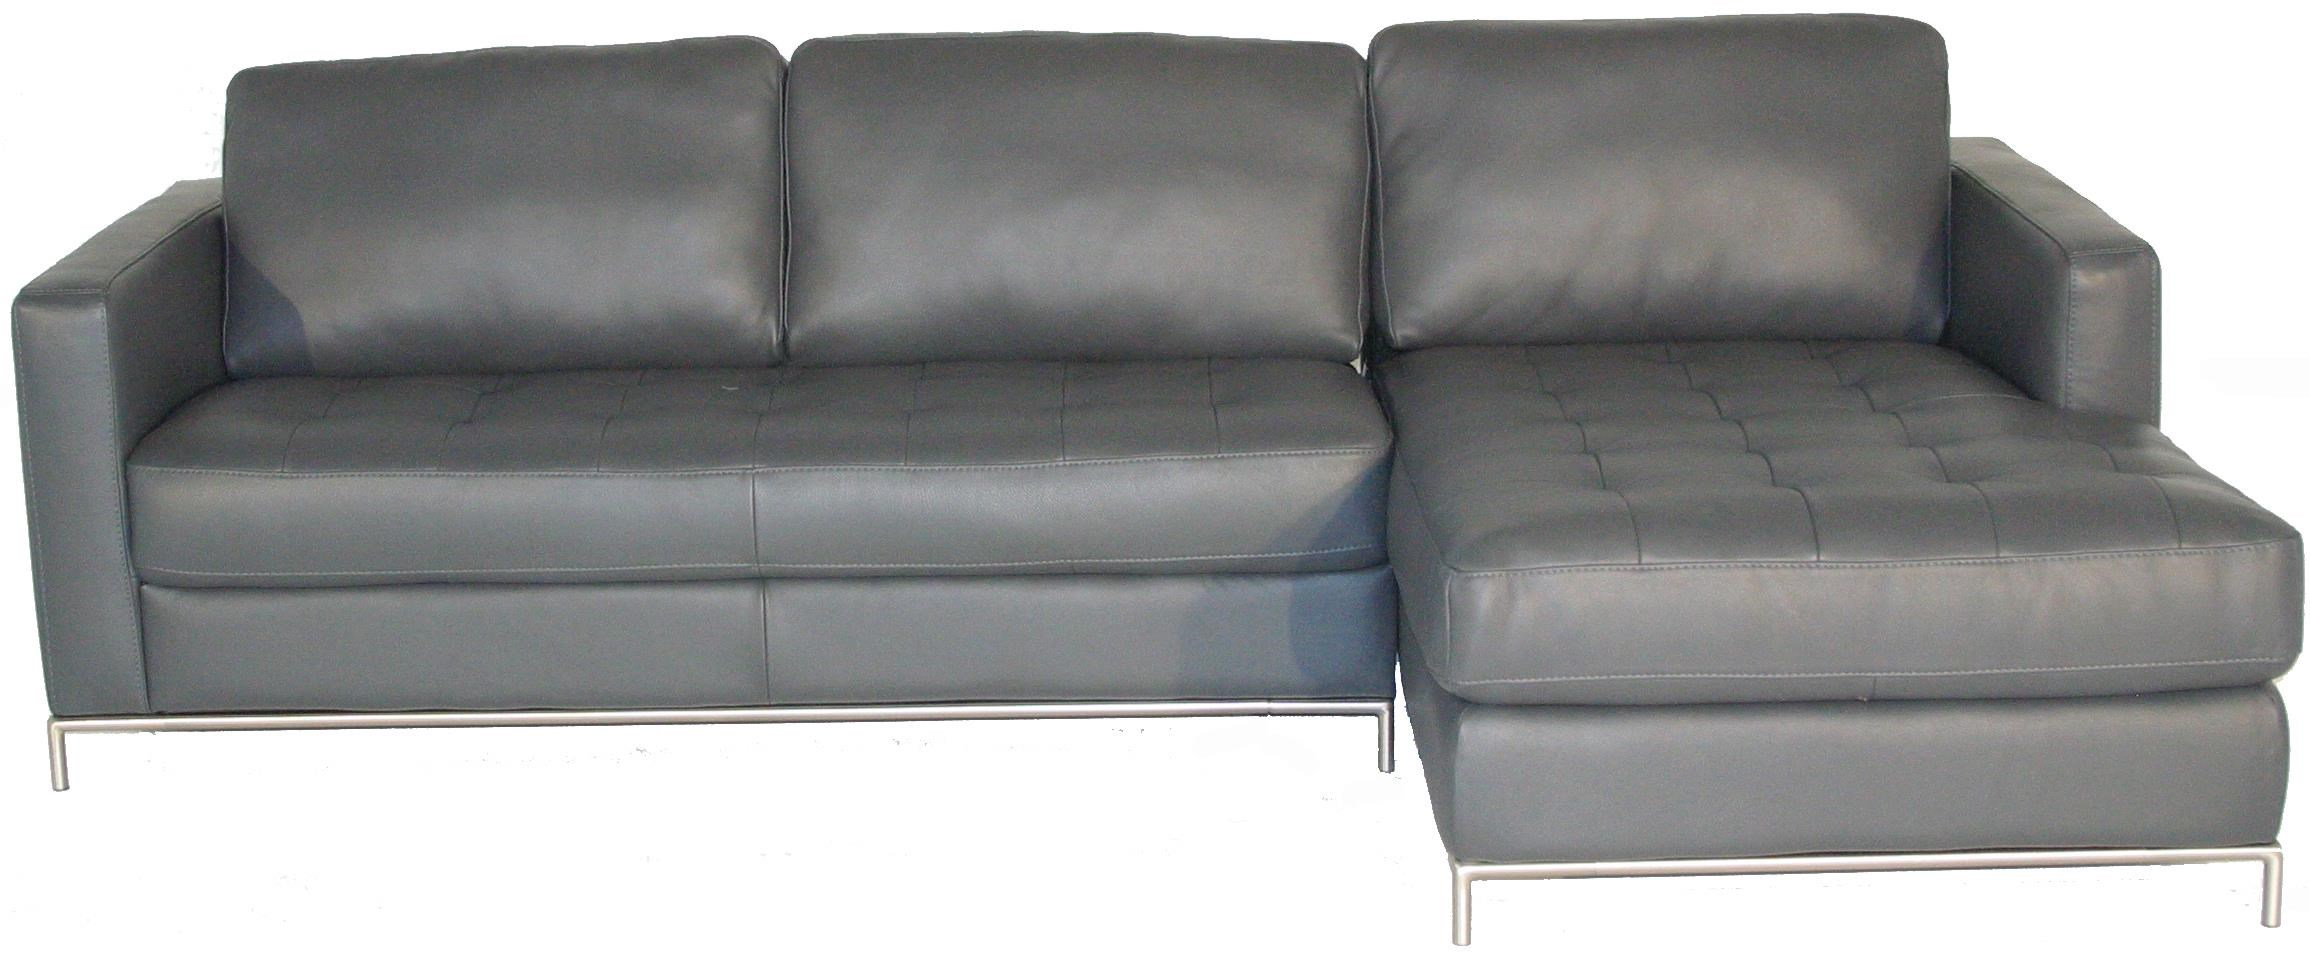 Natuzzi Editions B805 Right Arm Facing Sofa Chaise With